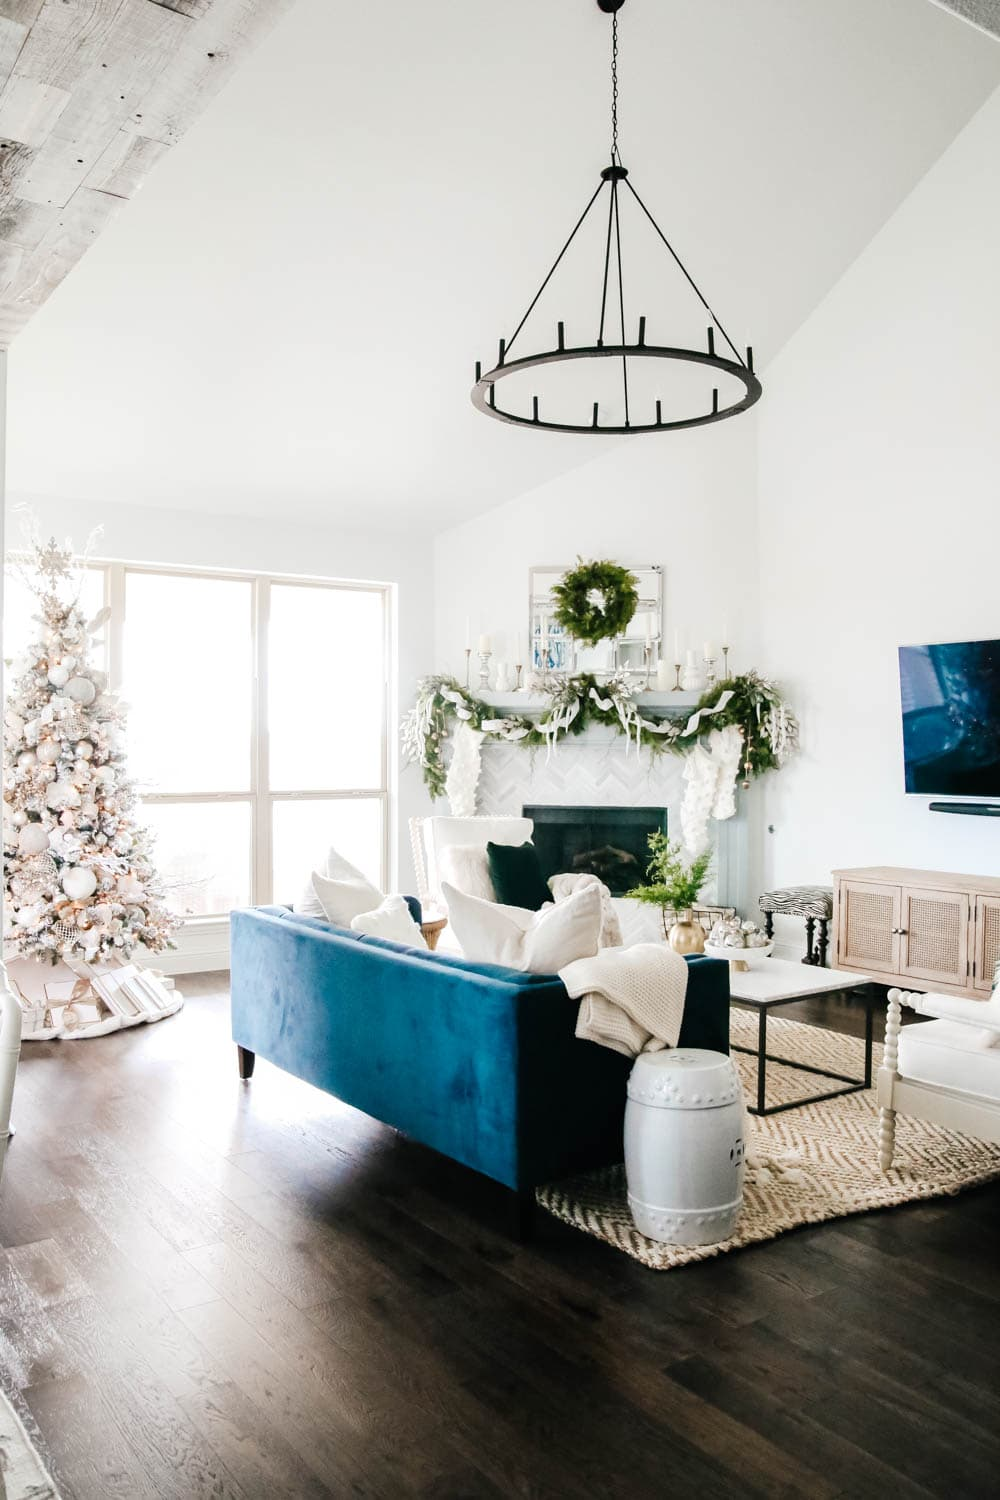 Green accent and soft subtle Christmas decor in a blue and white living room. #ABlissfulNest #christmasdecor #christmashometour